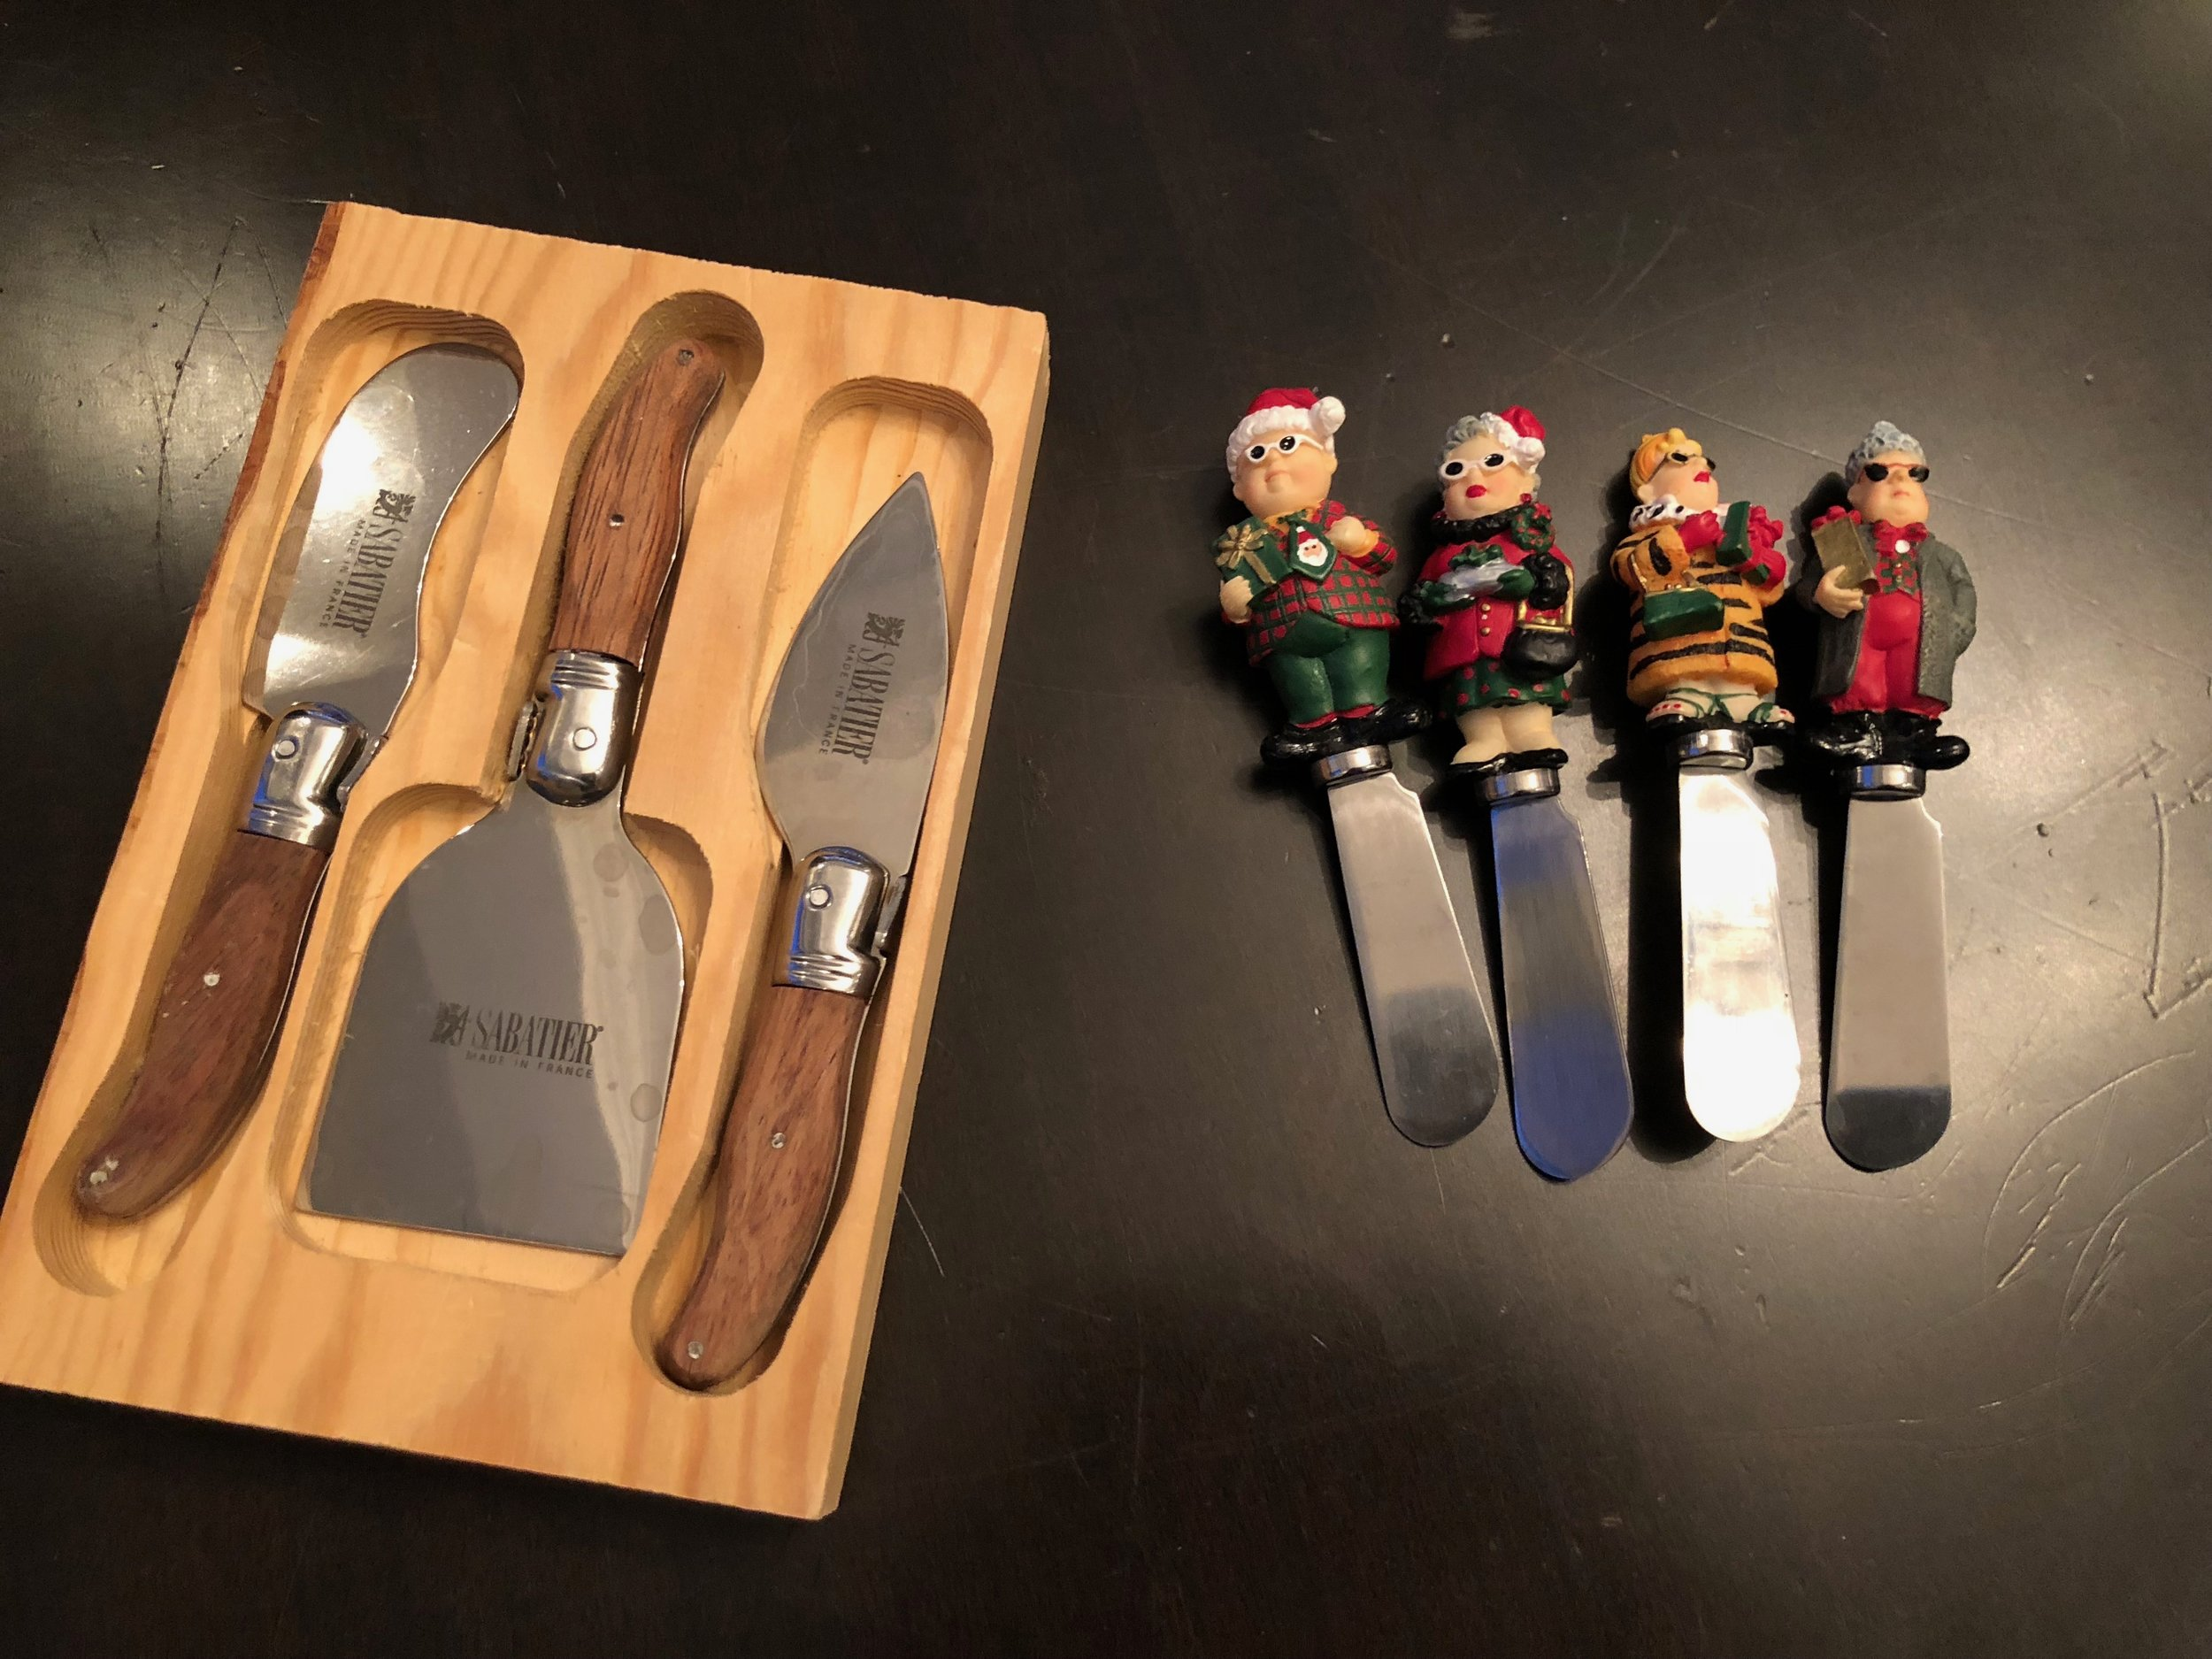 Choose some serious cheese cutters or crazy, fun spreaders.